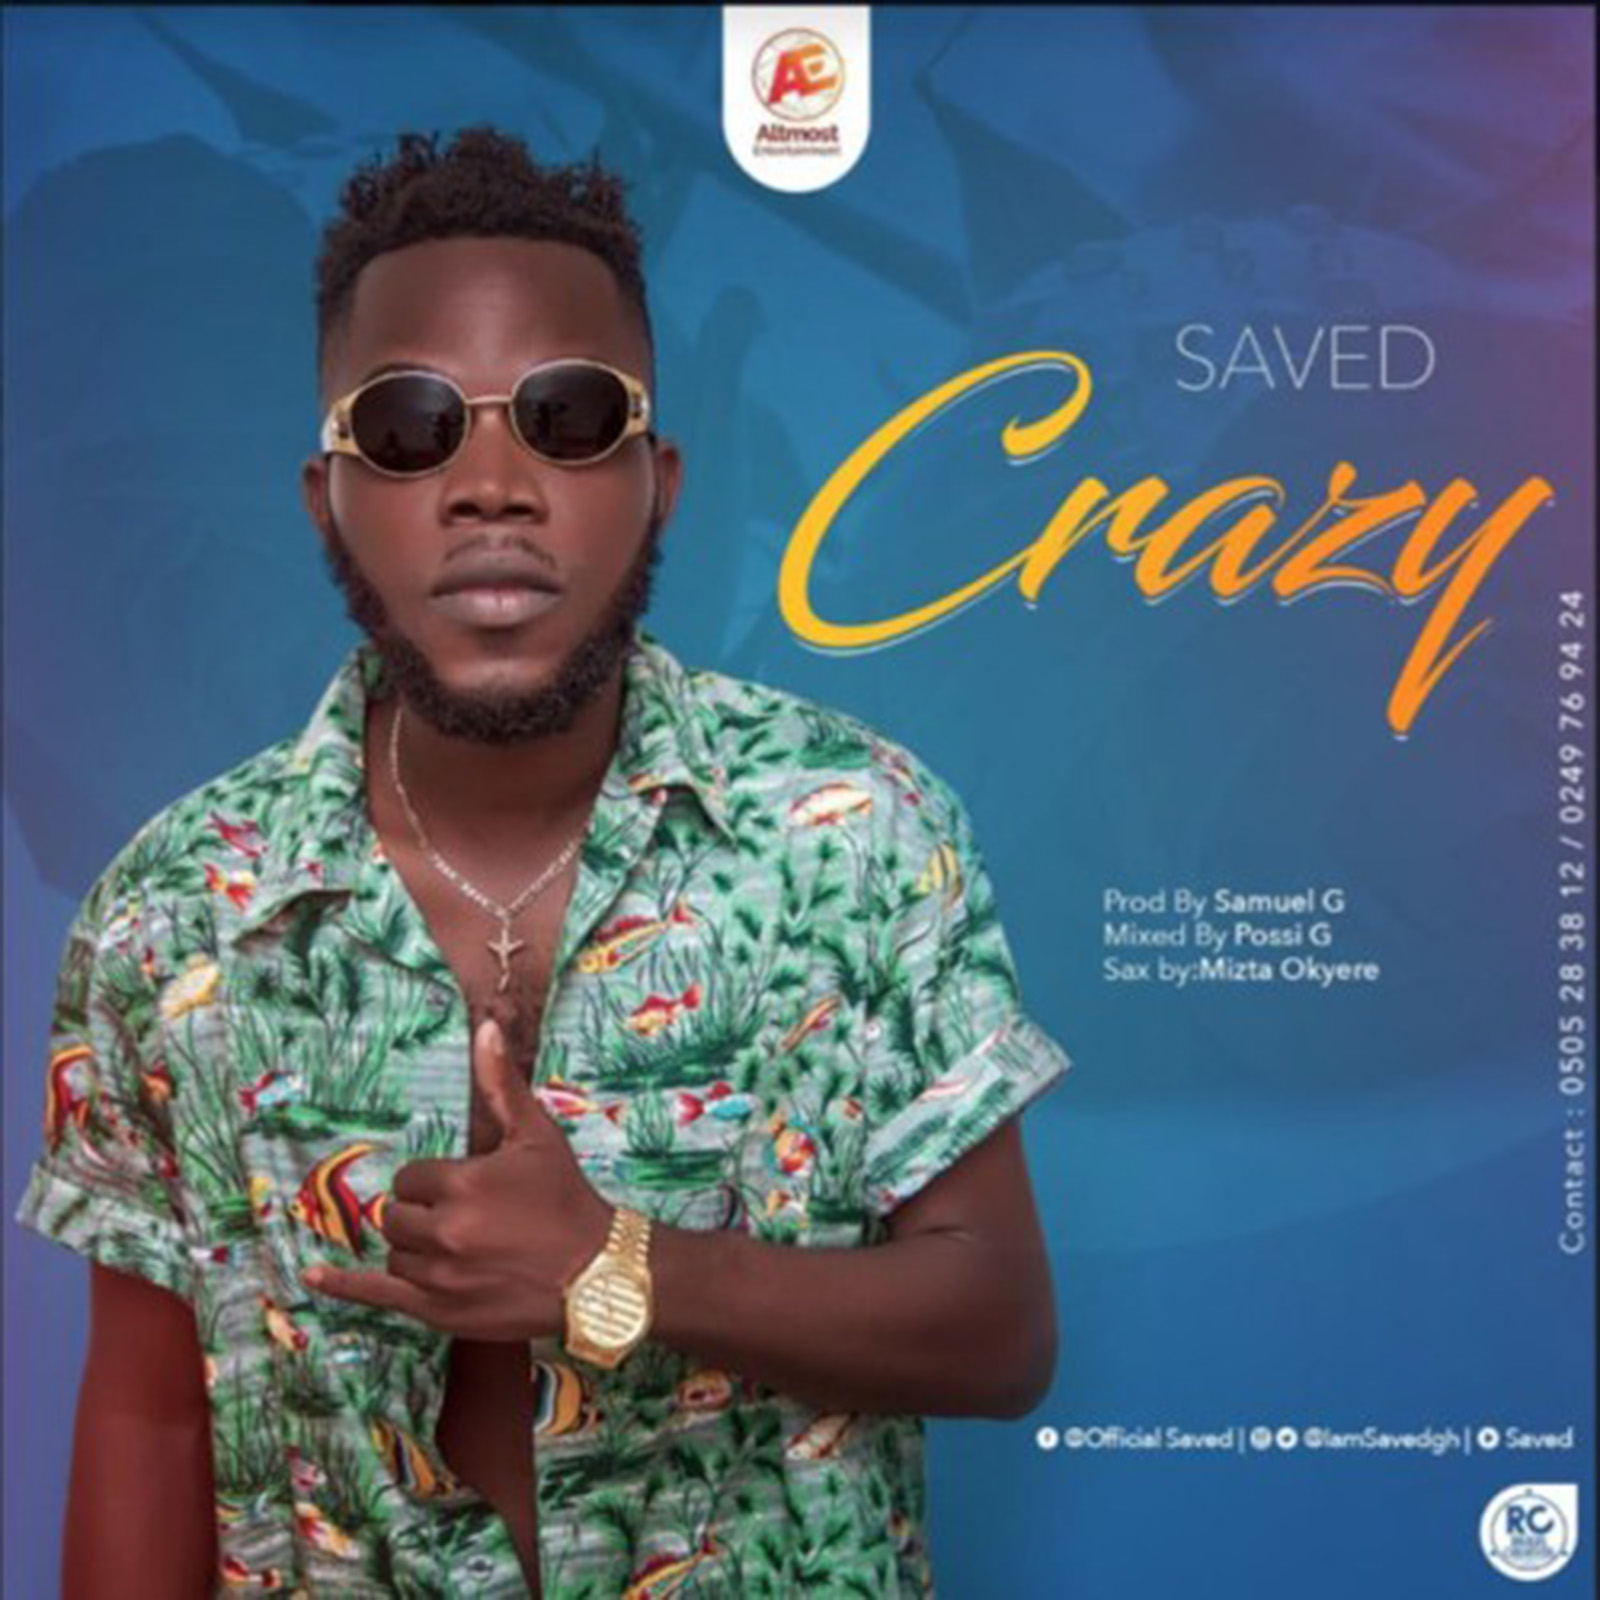 Crazy by Save